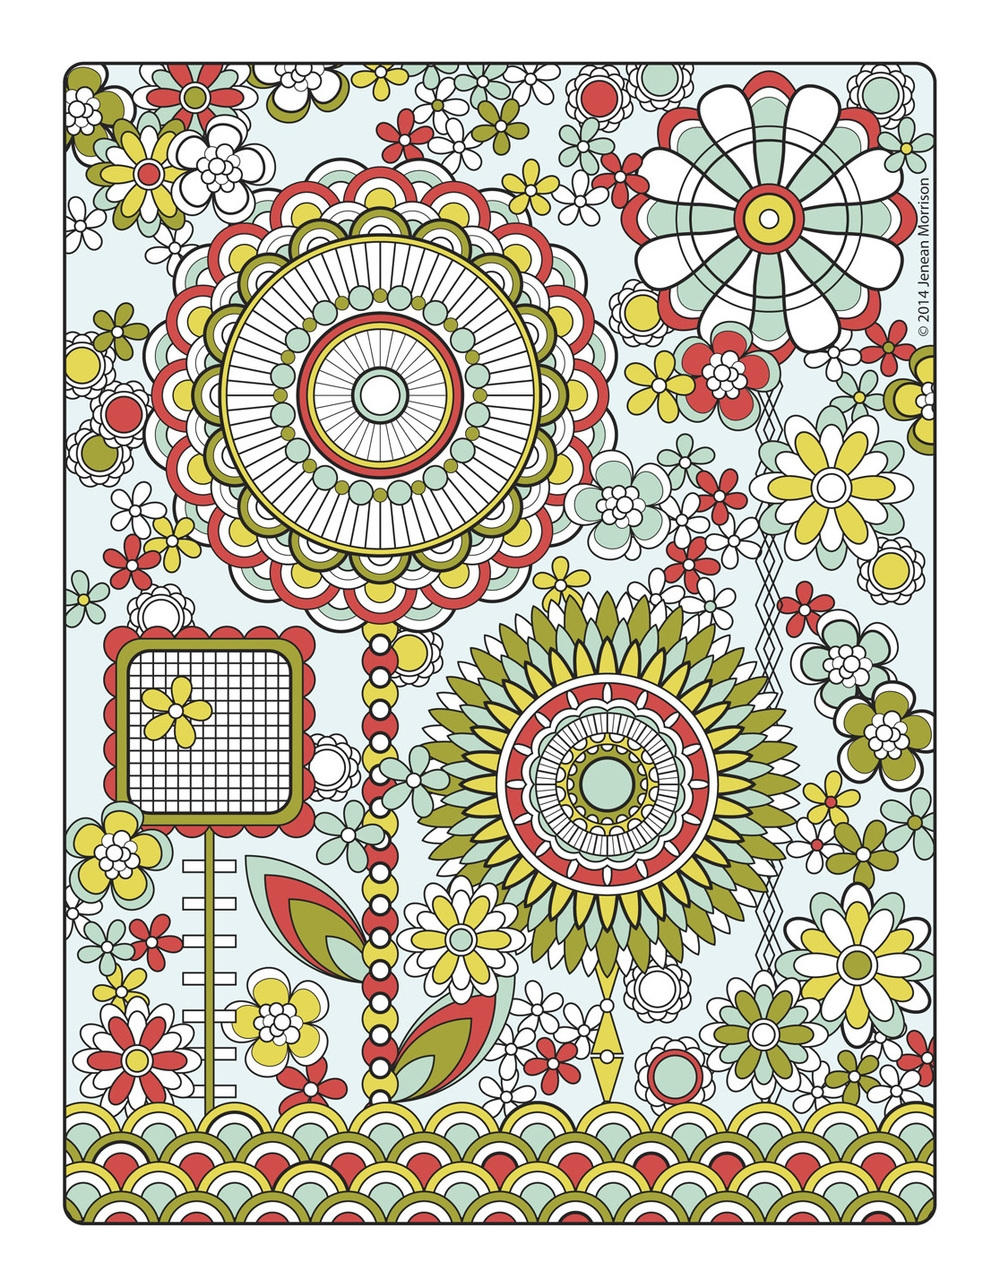 24 Downloadable Adult Coloring Pages Pictures | FREE COLORING PAGES ...